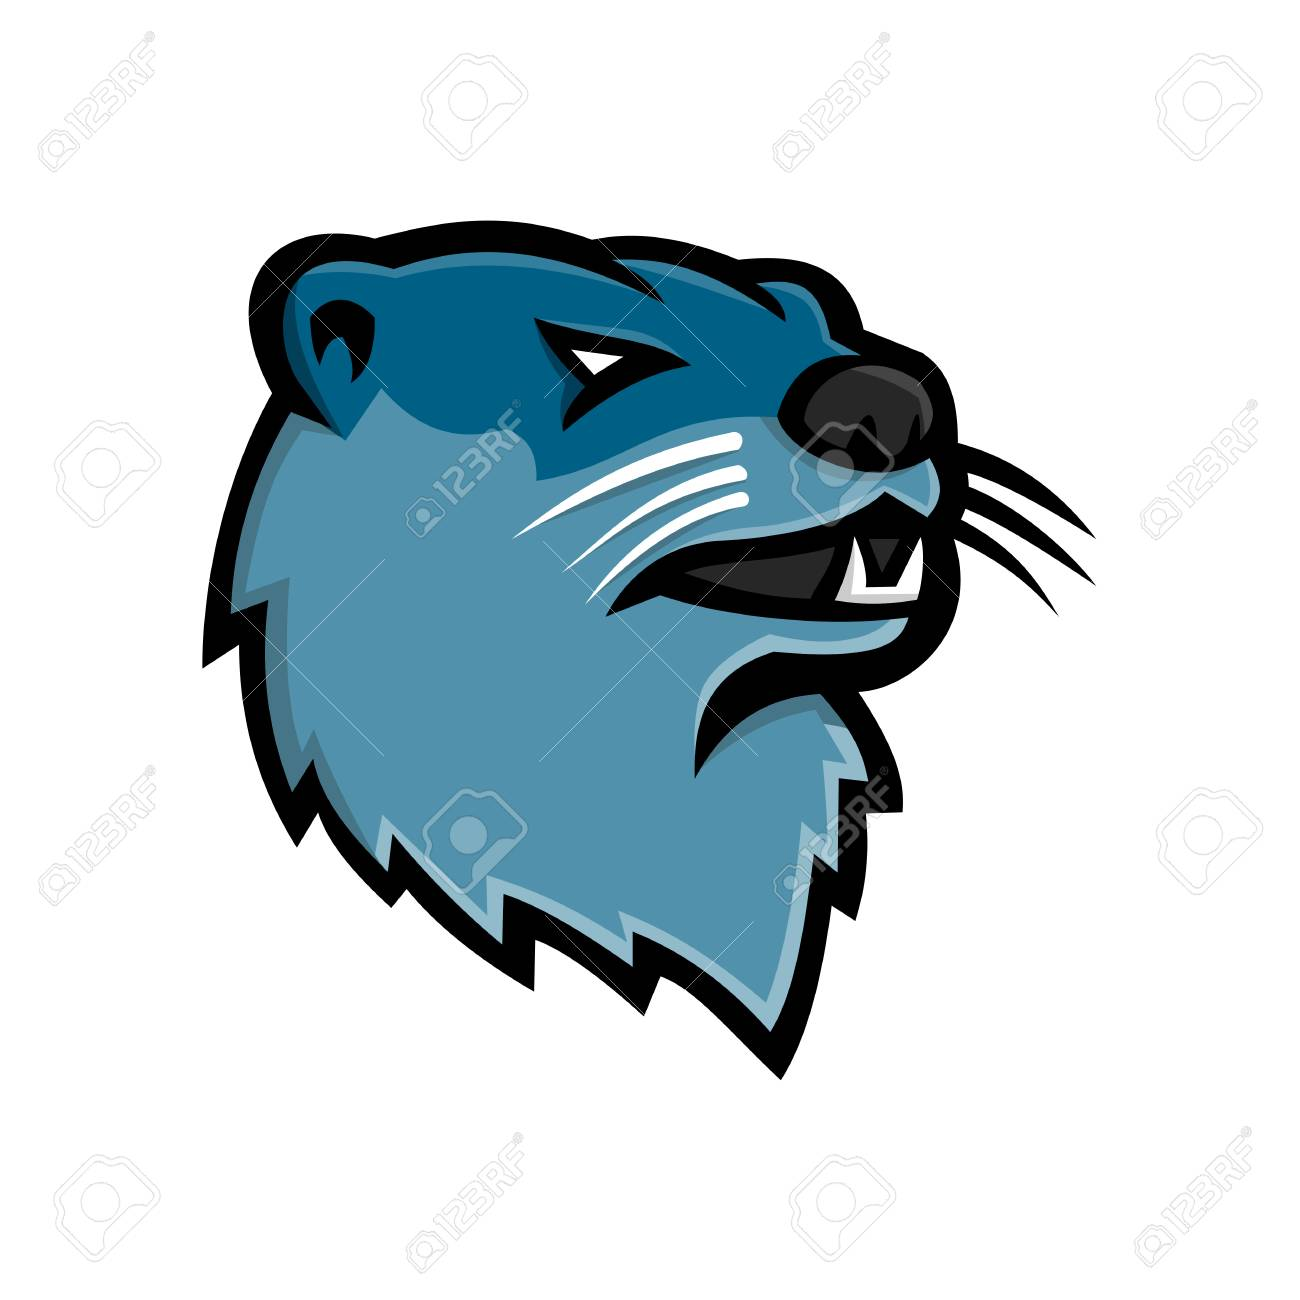 Mascot icon illustration of head of a North American river otter, northern river otter or the common otter, a semiaquatic mammal endemic to the North America on isolated background in retro style. - 106213024